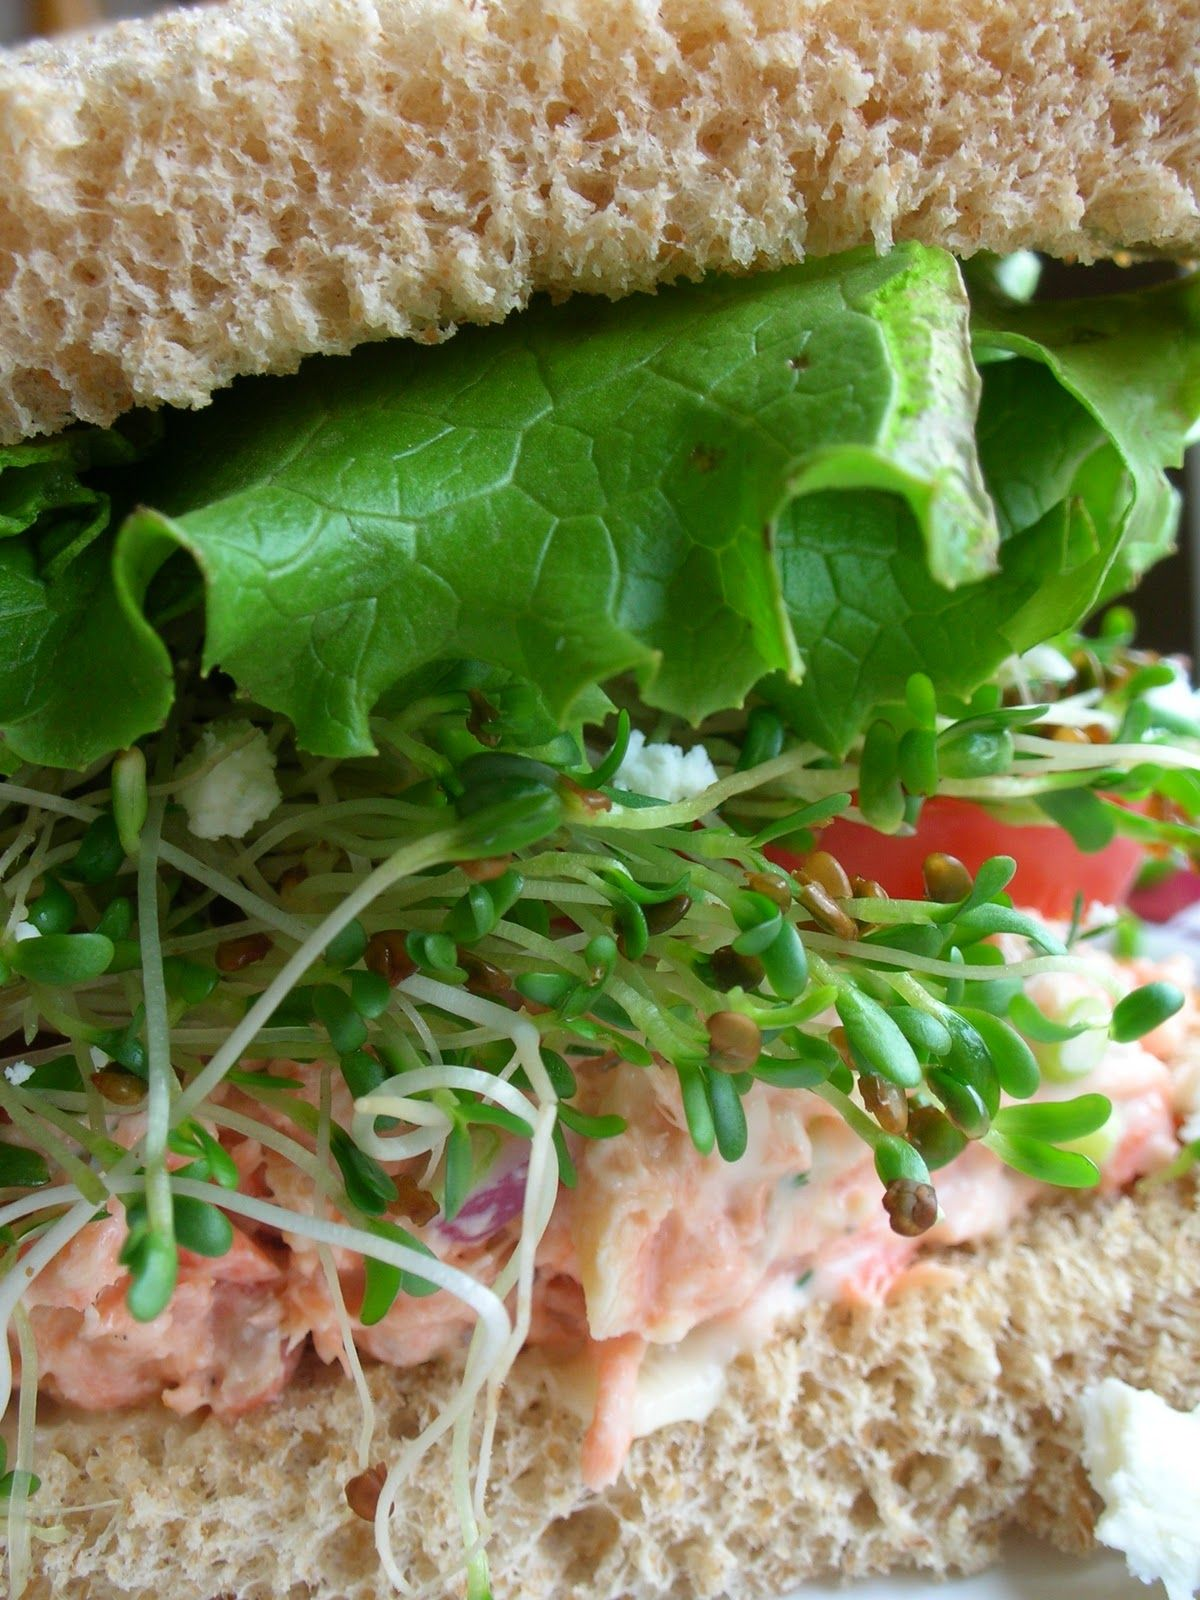 Salmon Salad - next time I cook salmon I'll  oook extra so I can make this the next day!